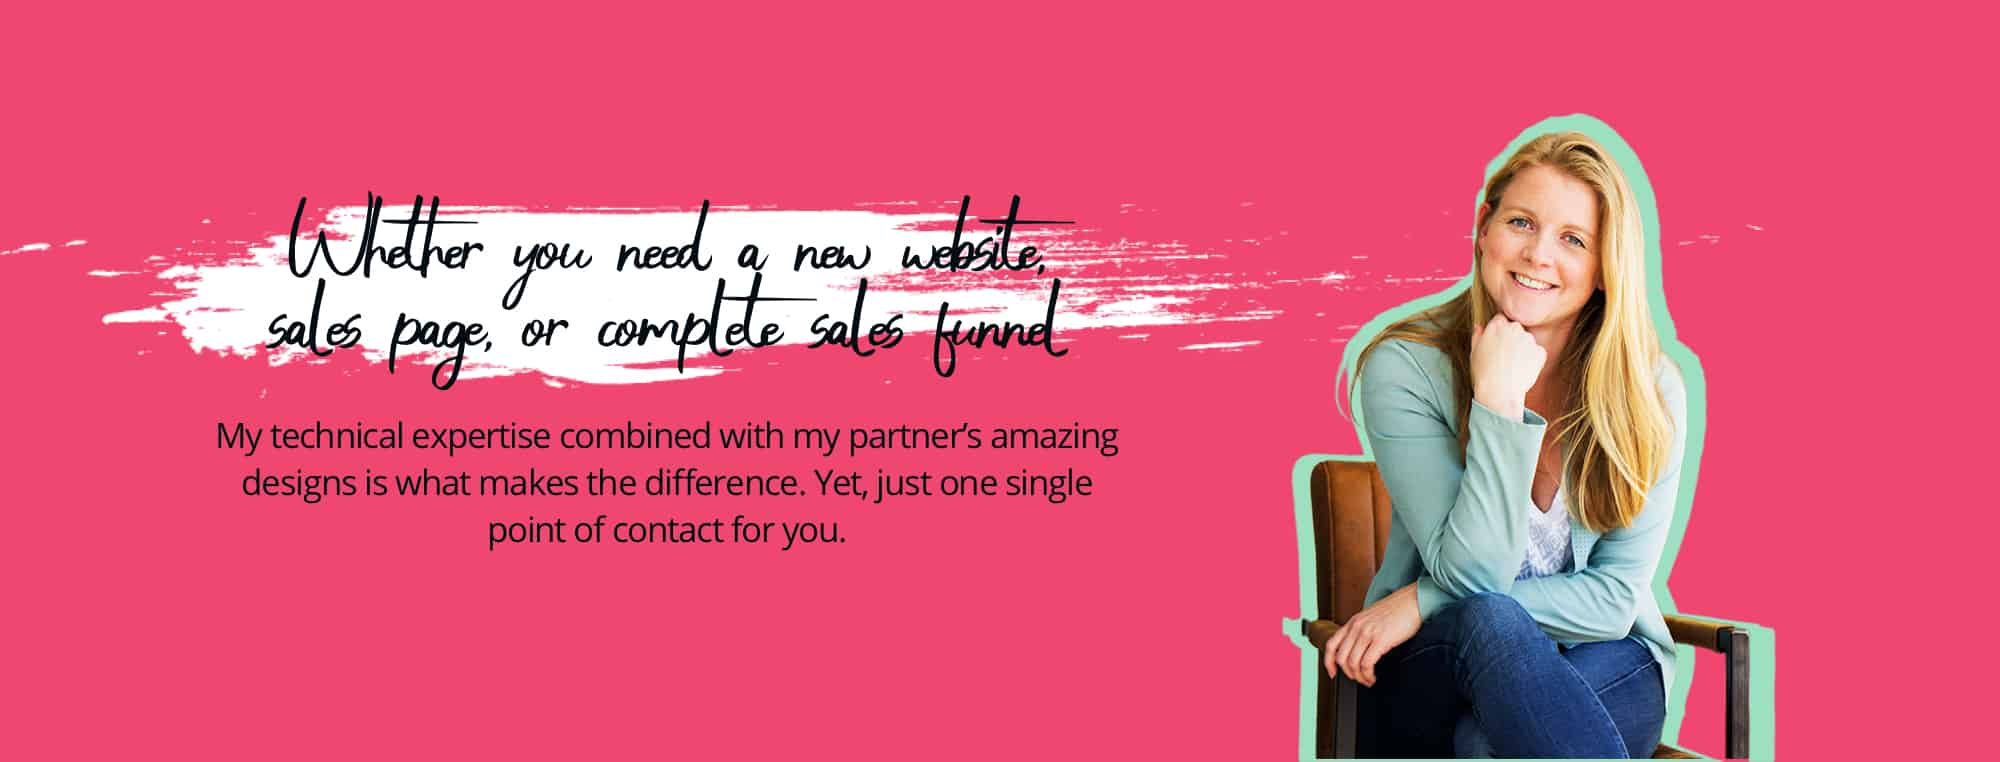 Whether you need a new website, sales page, or complete sales funnel